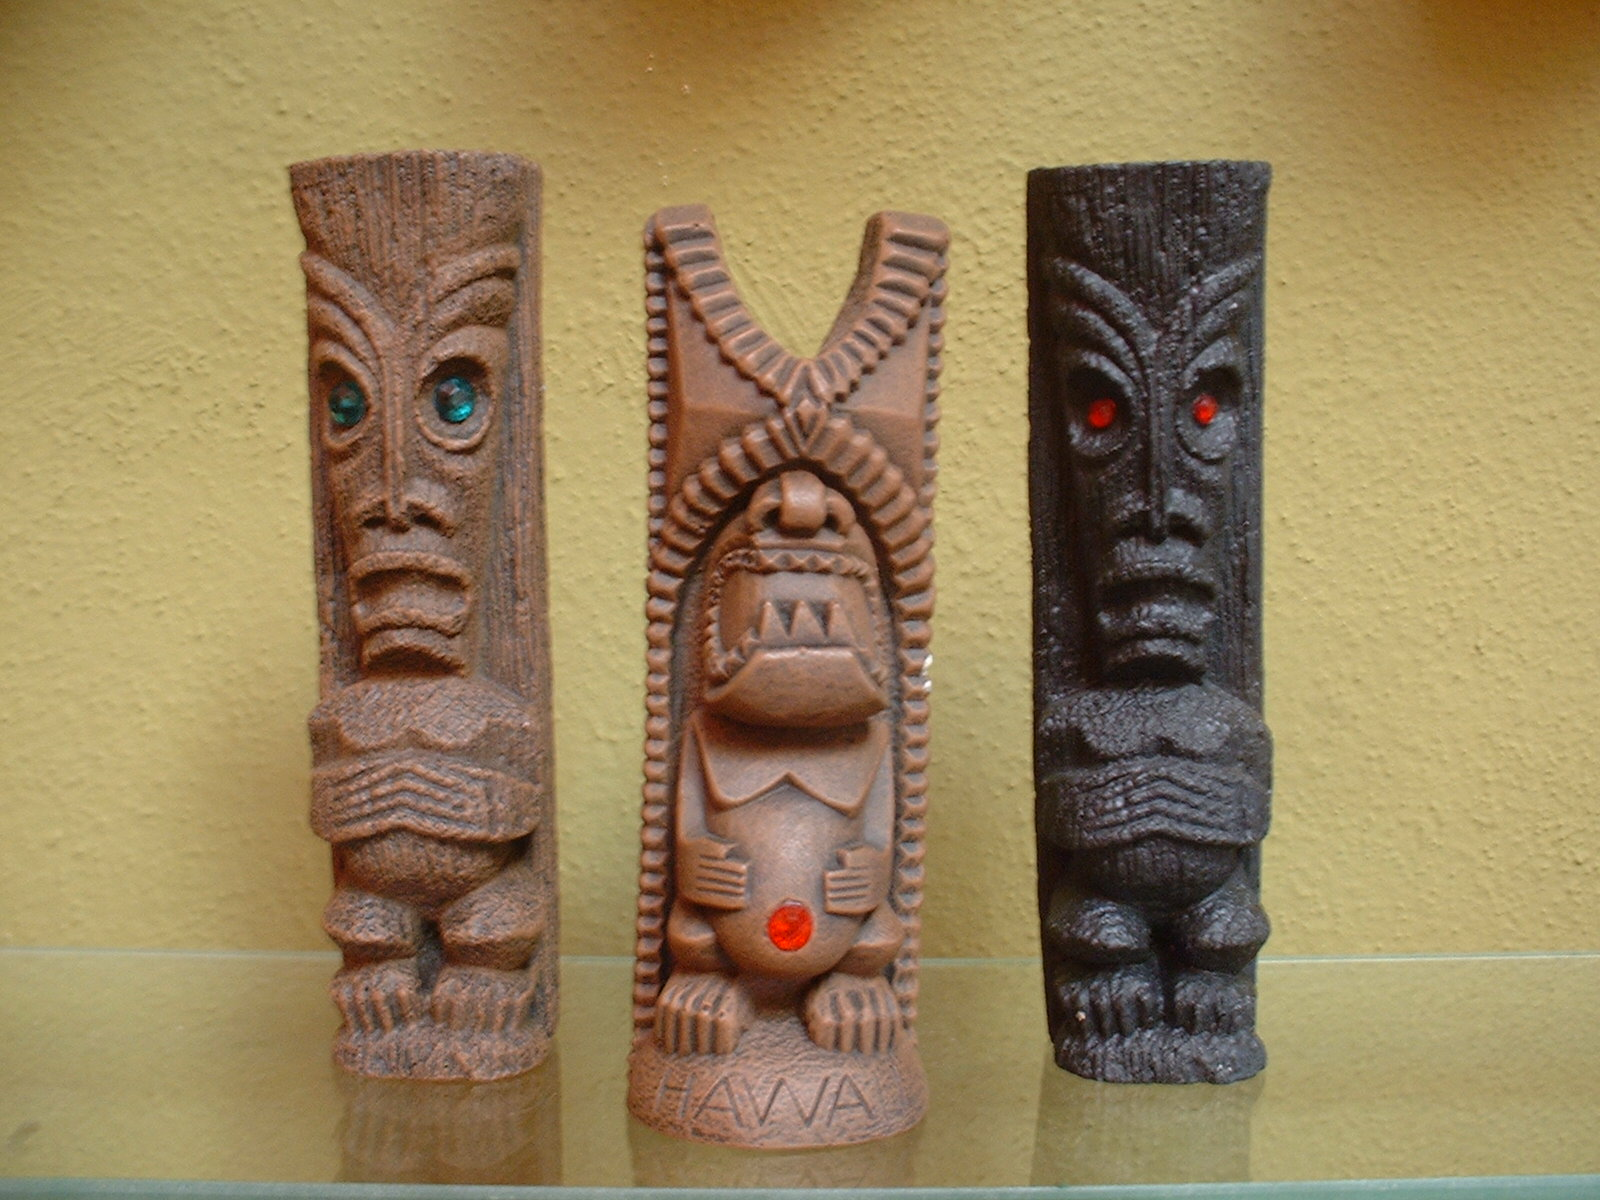 """""""Original""""Coco Joes Tiki God statuettes made in Hawaii from Lava!  Green Jewel eyed $35.00,   Red Jeweled Belly Button Tiki God $35.00 and  Green Jewel eyed $35.00,  all approx 6"""" H and signed"""